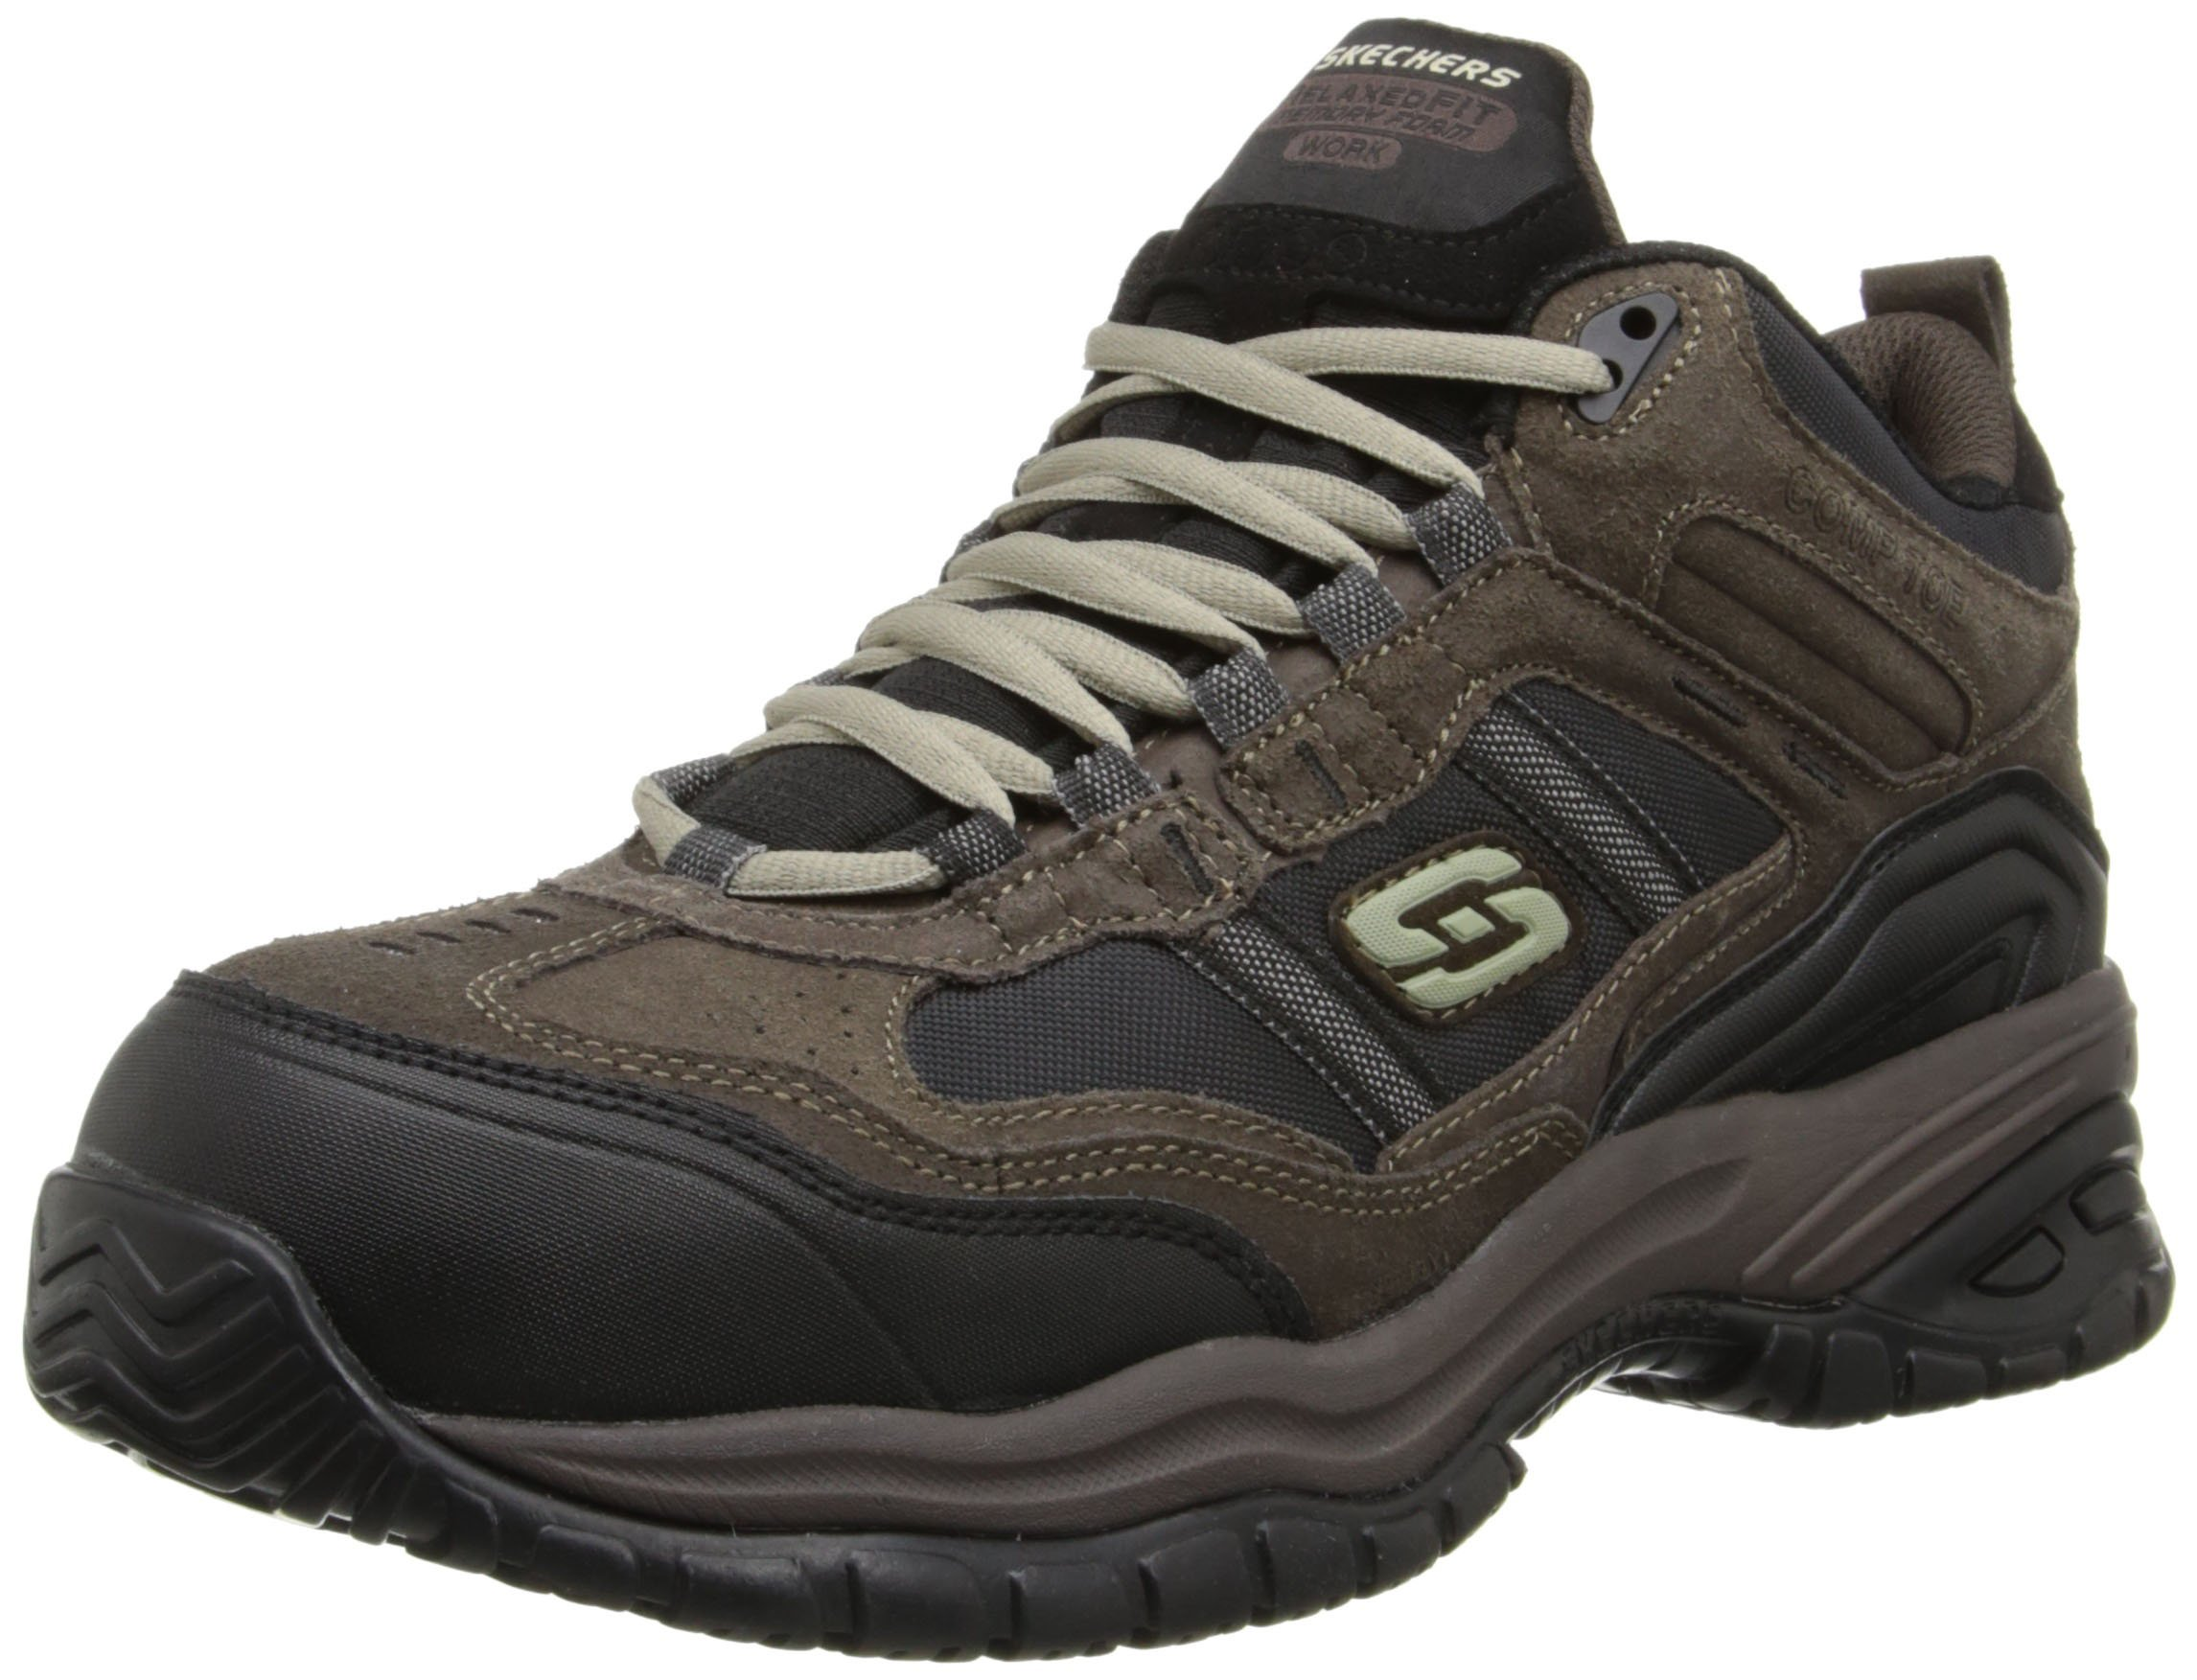 Skechers Men's Work Relaxed Fit Soft Stride Canopy Comp Toe Shoe, Brown/Black - 9 D(M) US